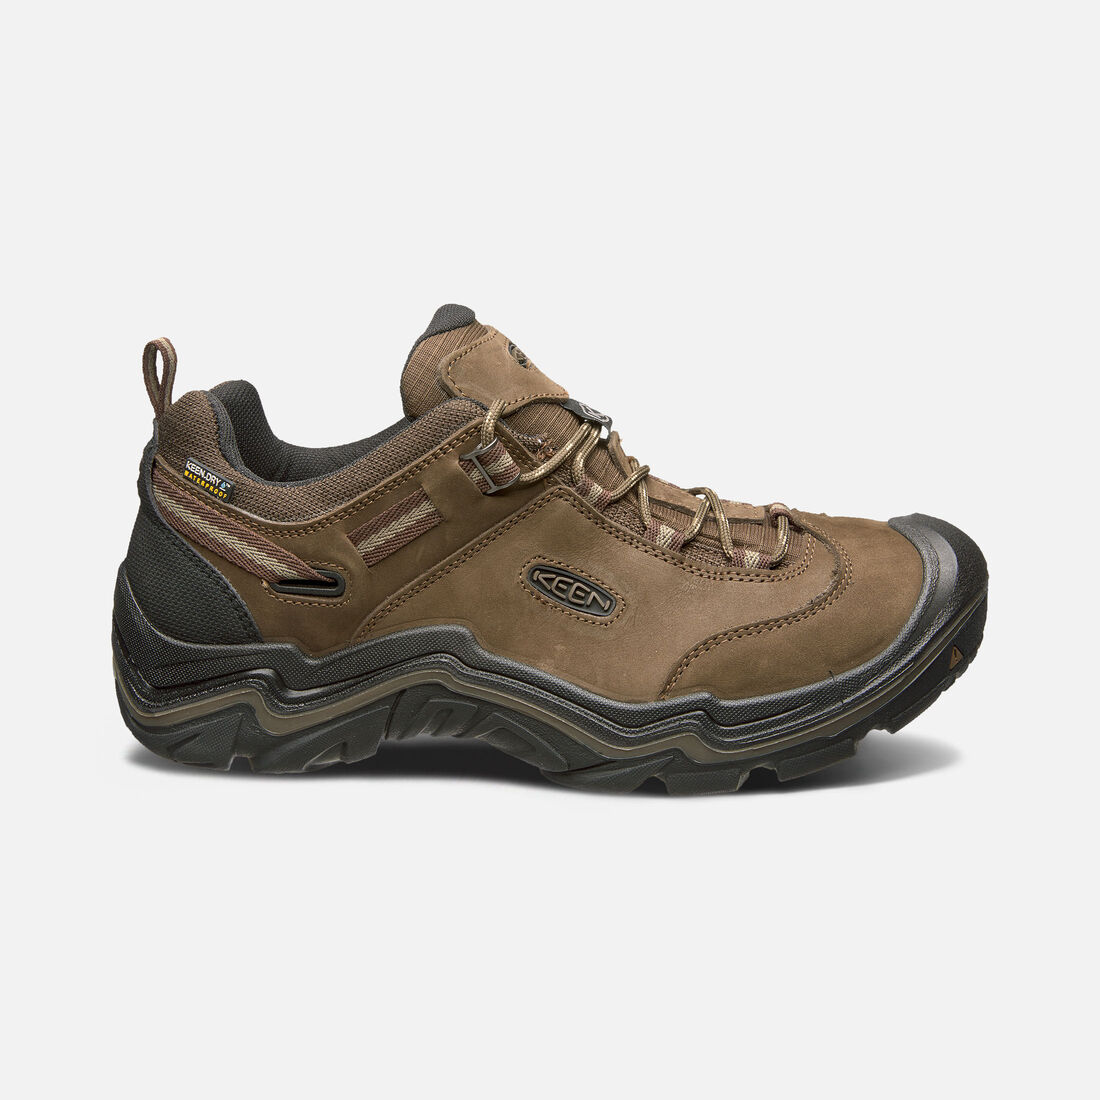 MEN'S WANDERER WATERPROOF HIKING BOOTS in Cascade Brown/Dark Earth - large view.